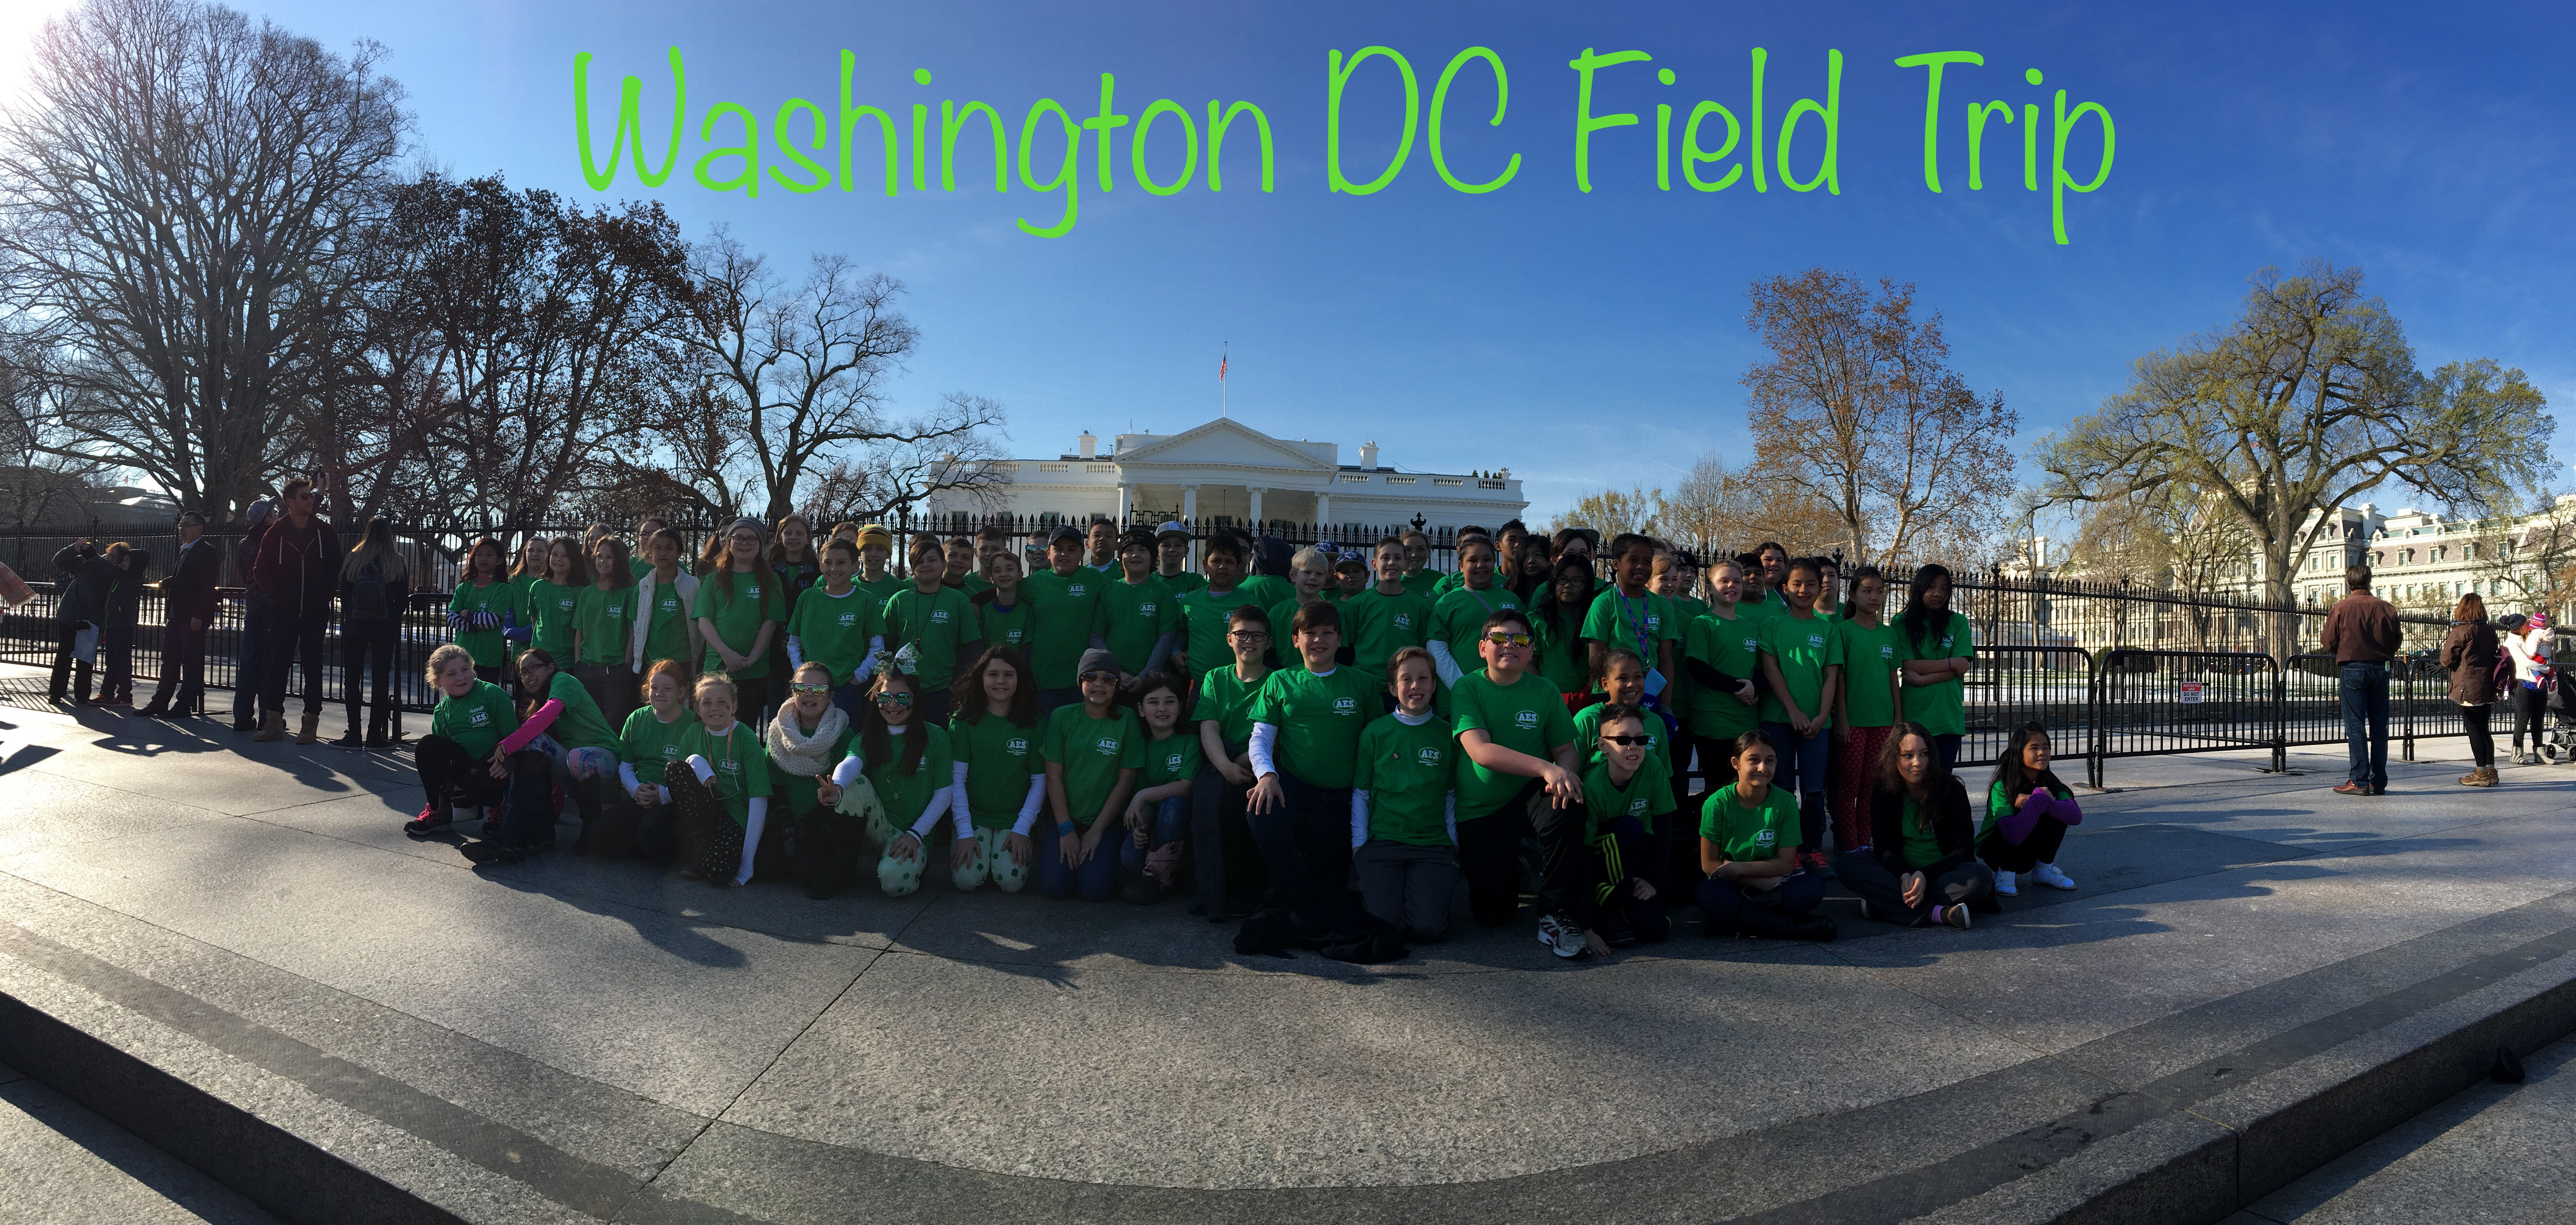 Washington DC Fieldtrip